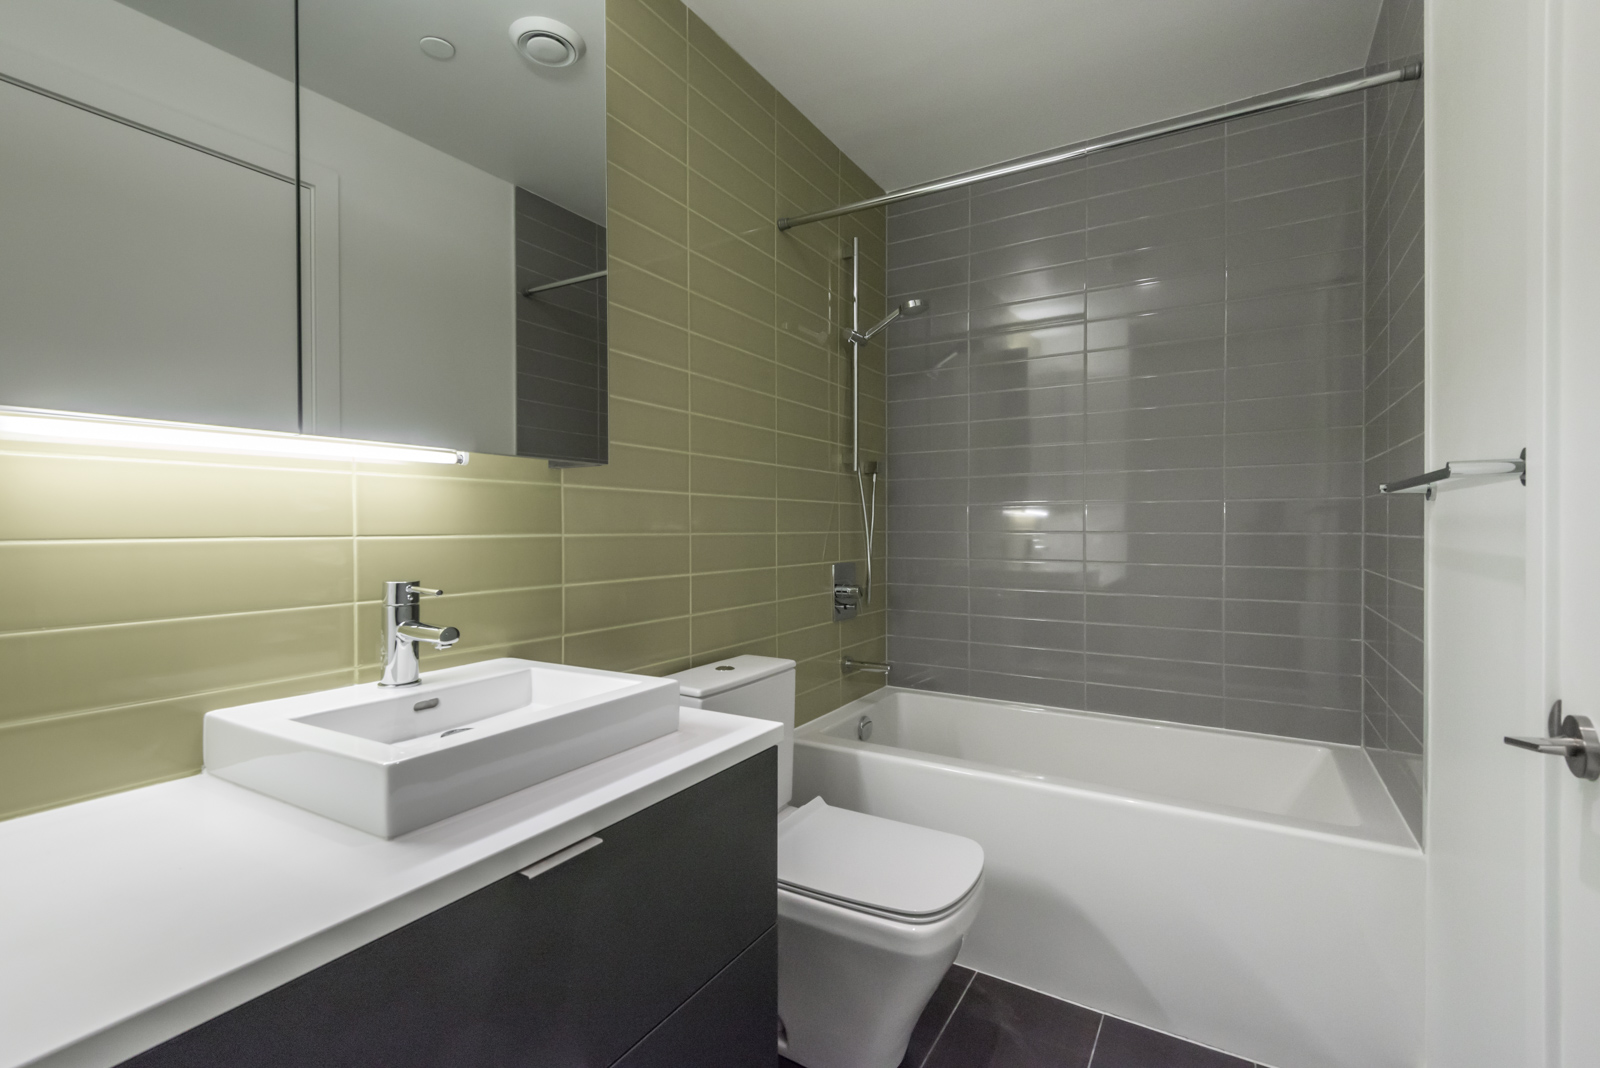 Image showing bathroom and tub. Also shows green and gray tiles, sink, and toilet.